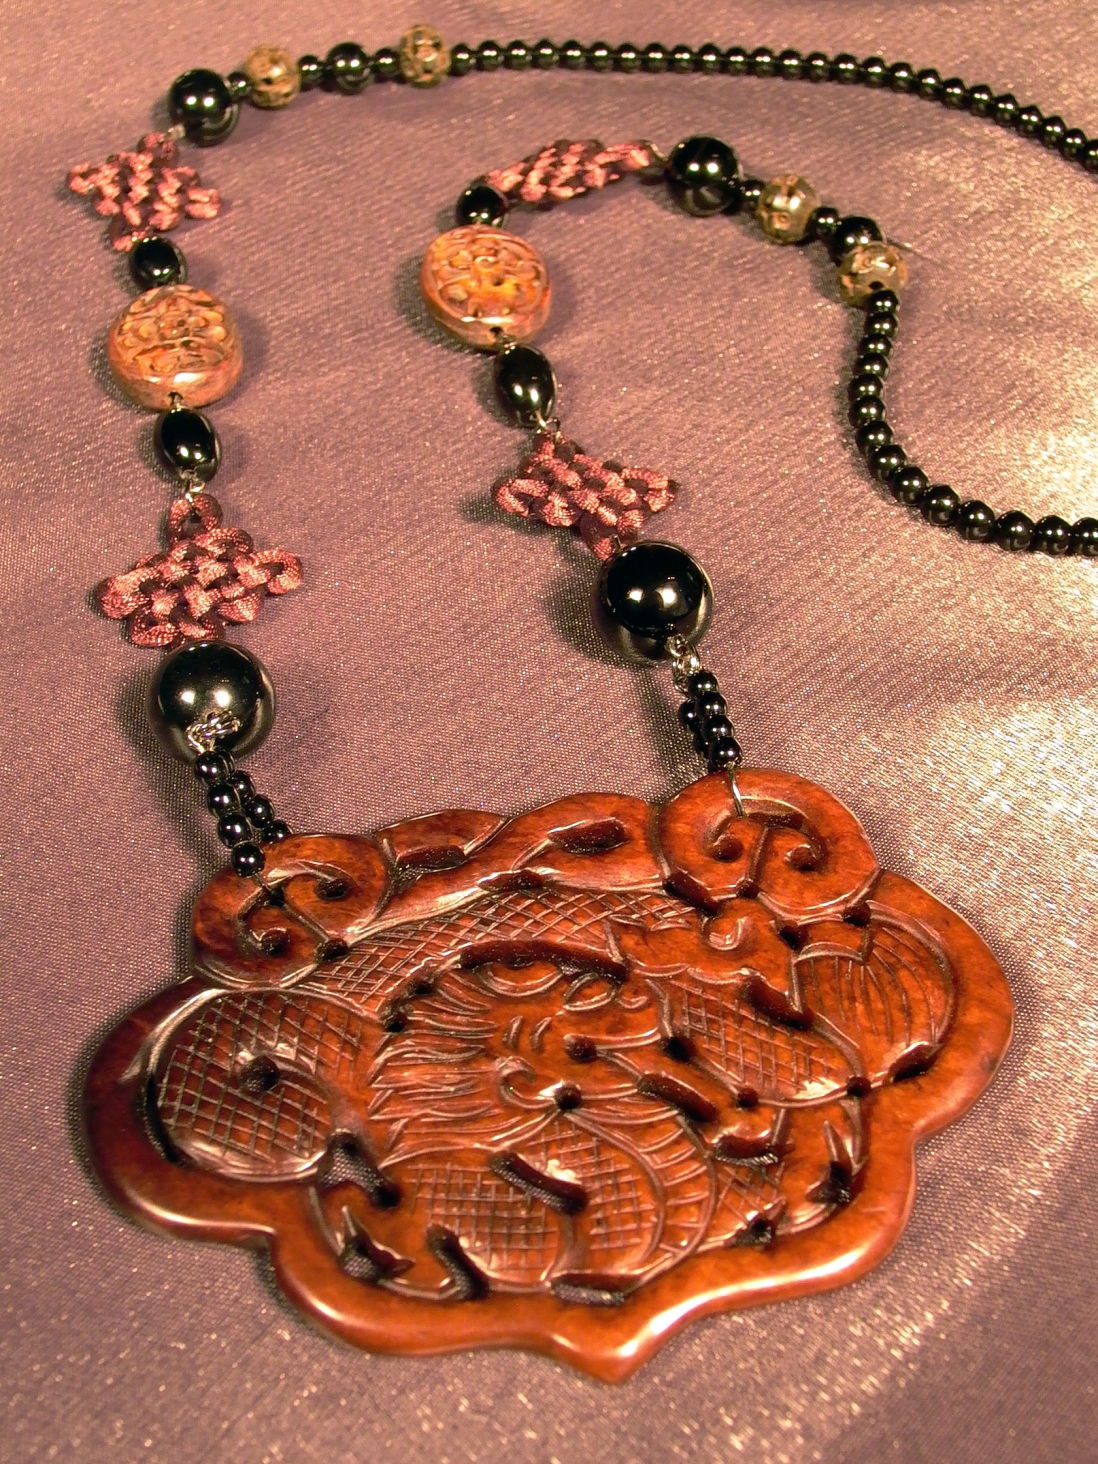 This is a colour photograph of a necklace with an asian-style carved dragon pendant and gemstone beads